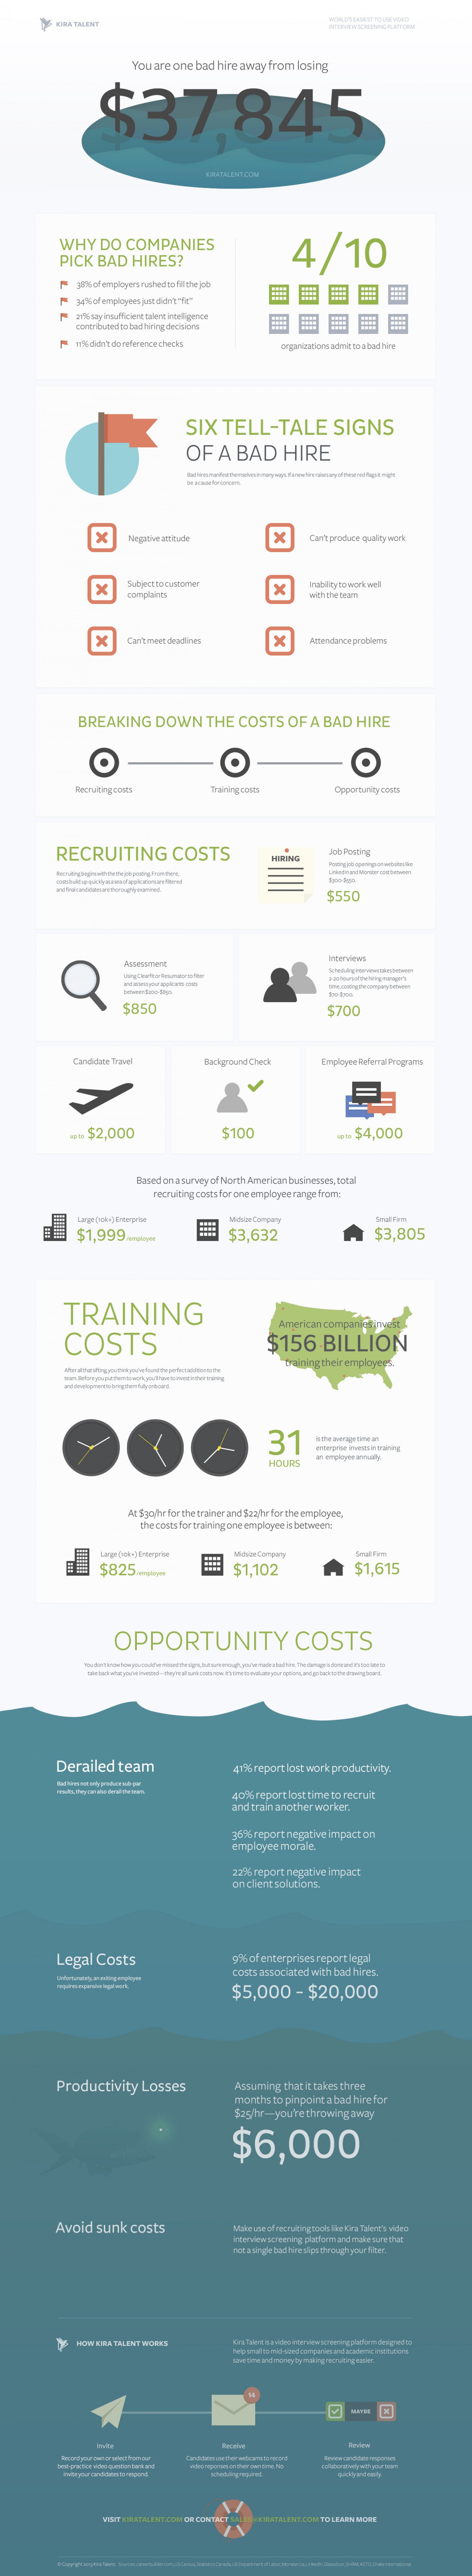 The Cost of a Bad Hire Infographic